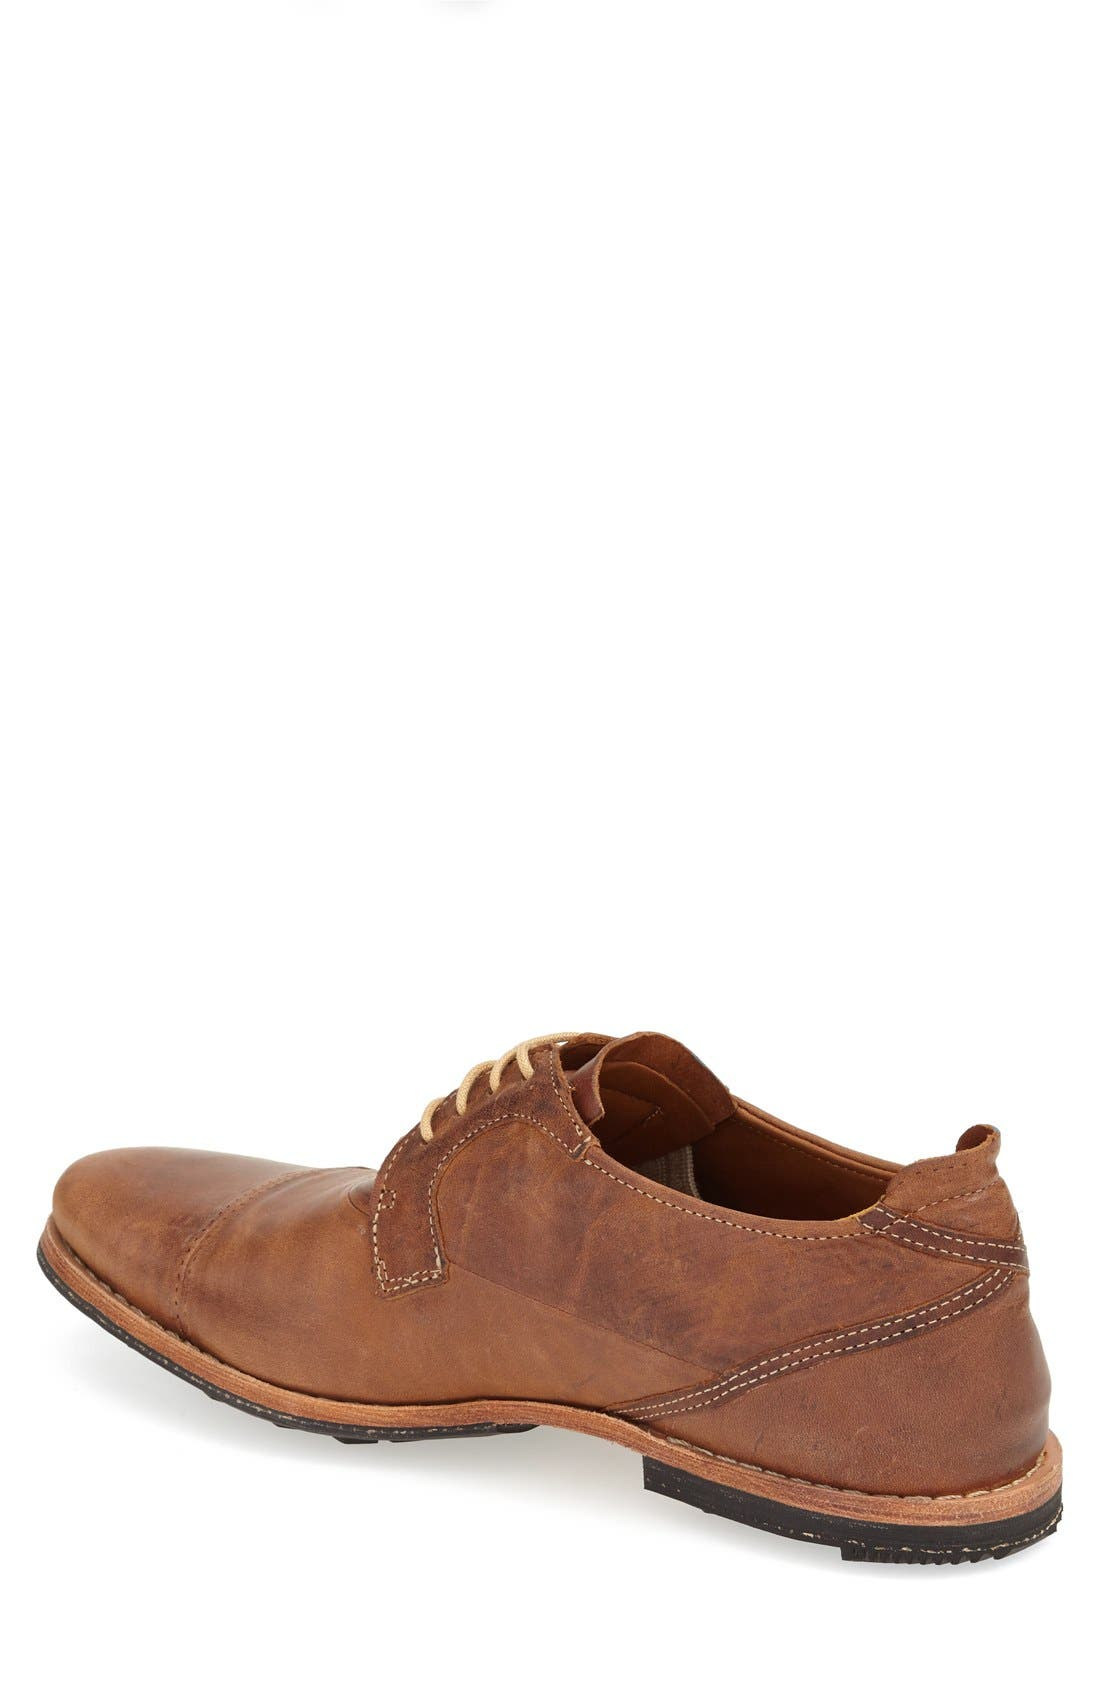 Alternate Image 5  - Timberland 'Wodehouse Lost History' Cap Toe Oxford (Men)